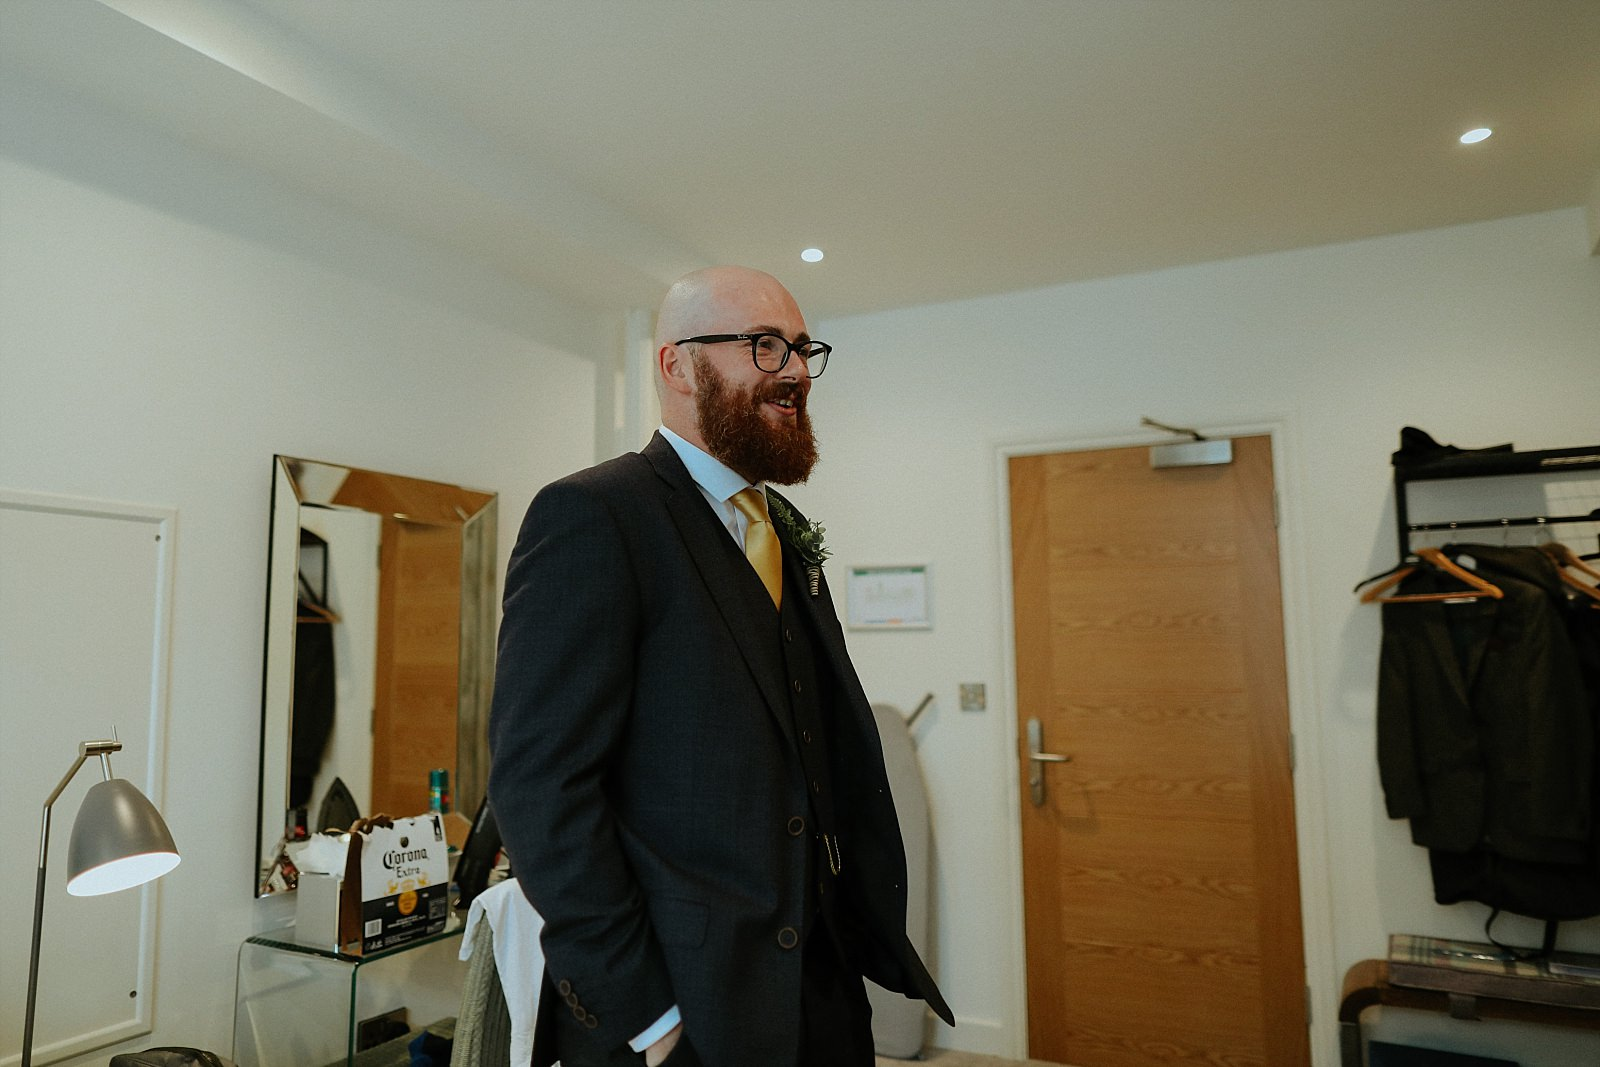 hipster groom with beard and glasses